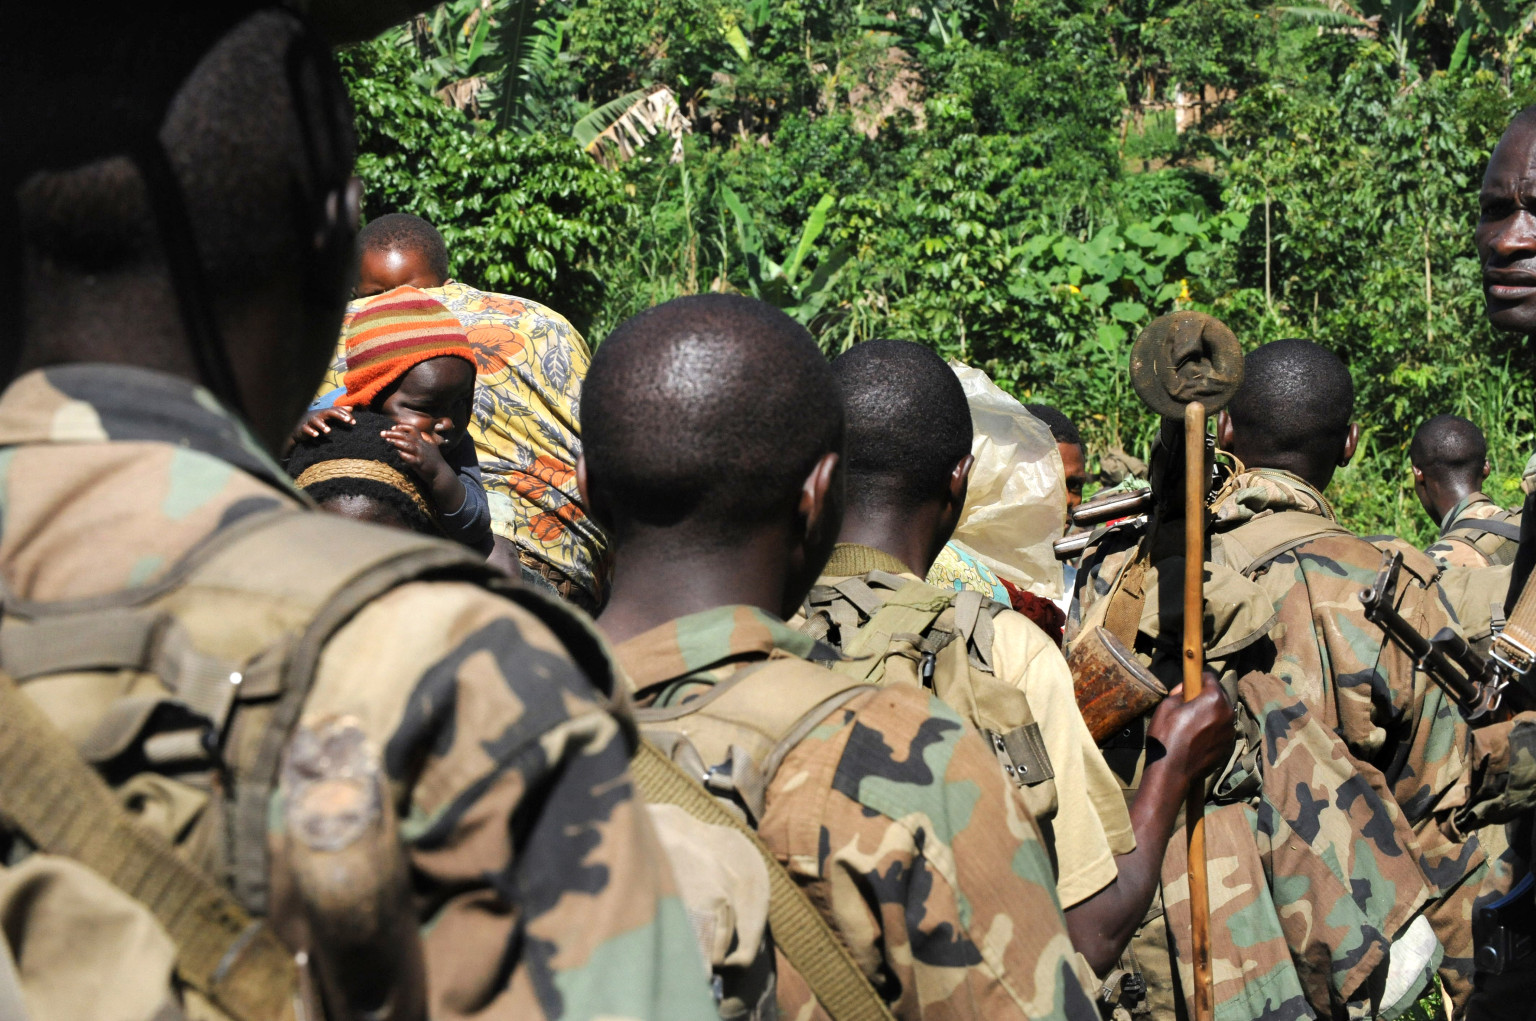 congo genocide Report blames bana mura militia and government forces for murders, including of  62 children, and urges drc to prevent escalation into wider.